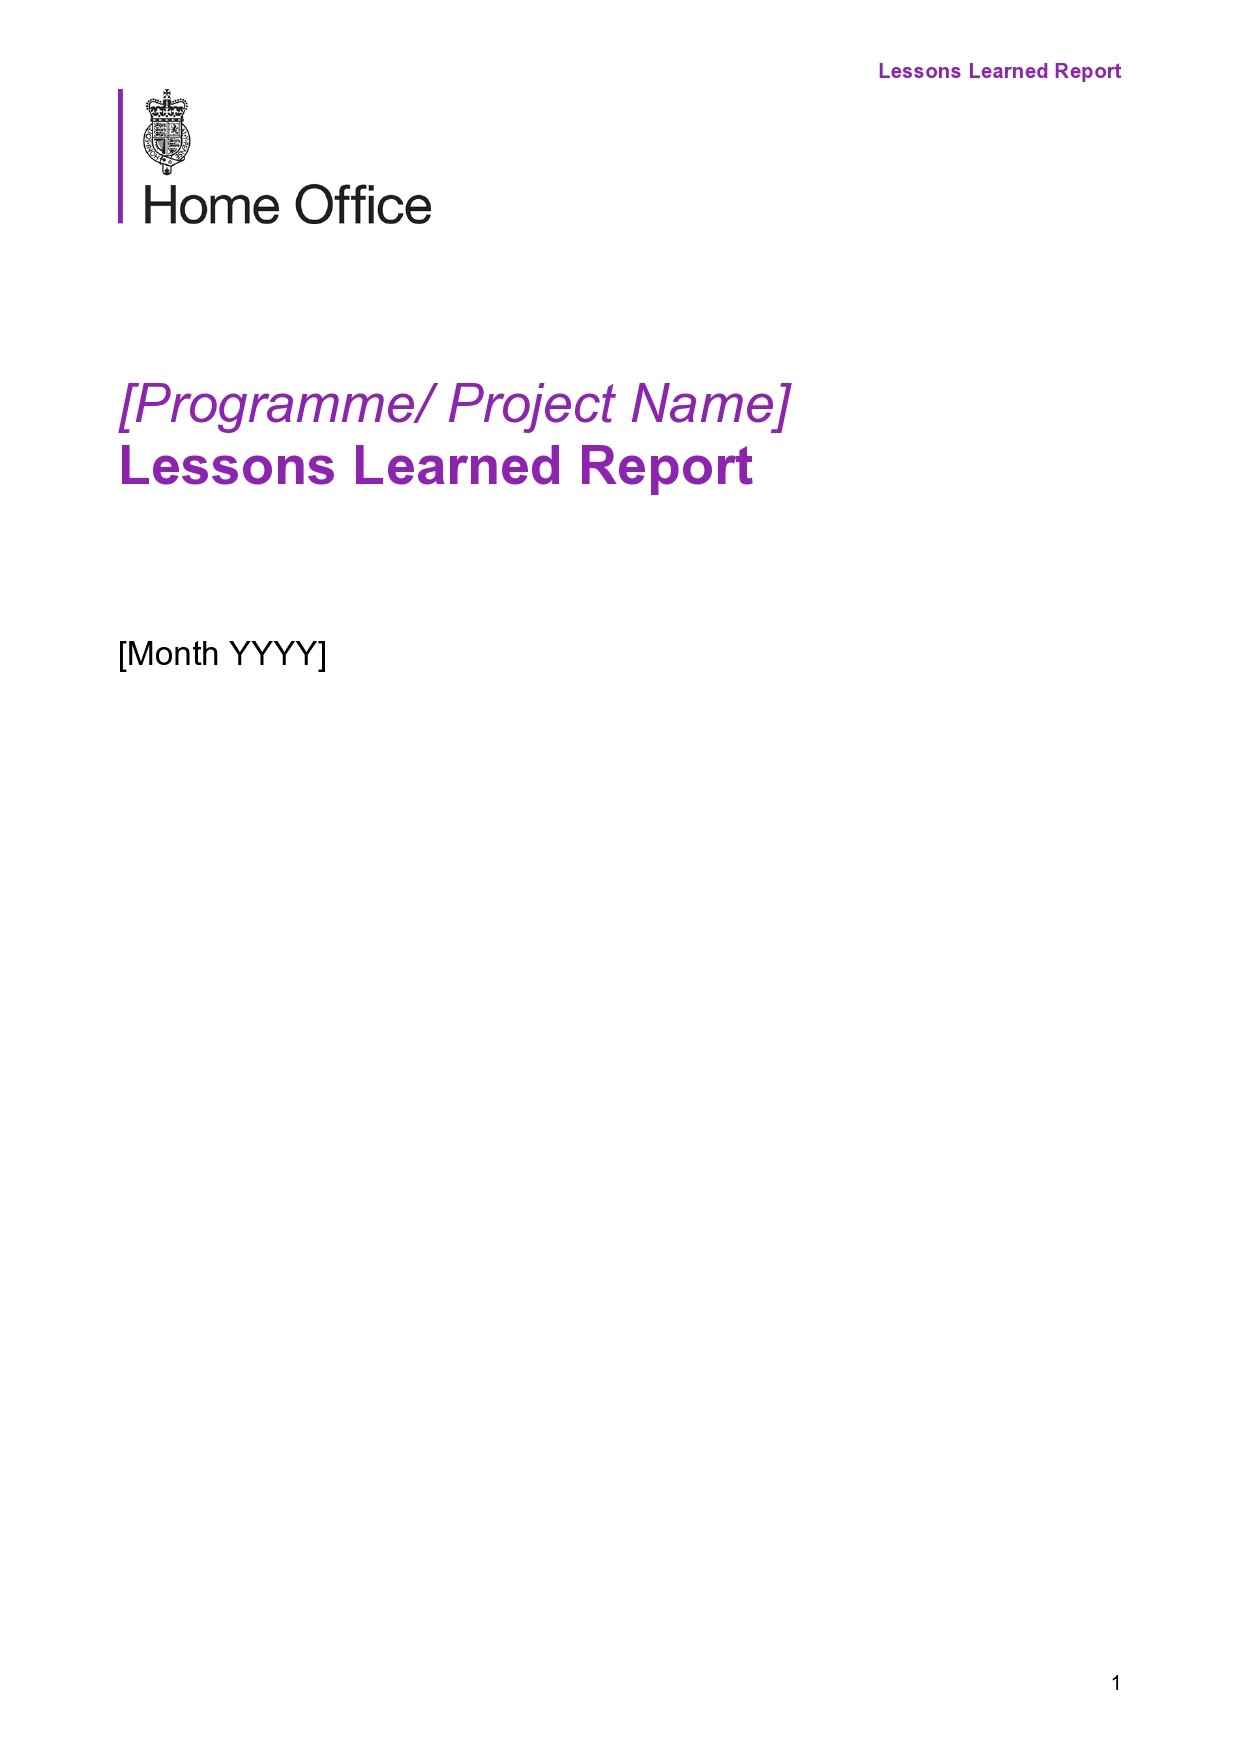 Free lessons learned template 17